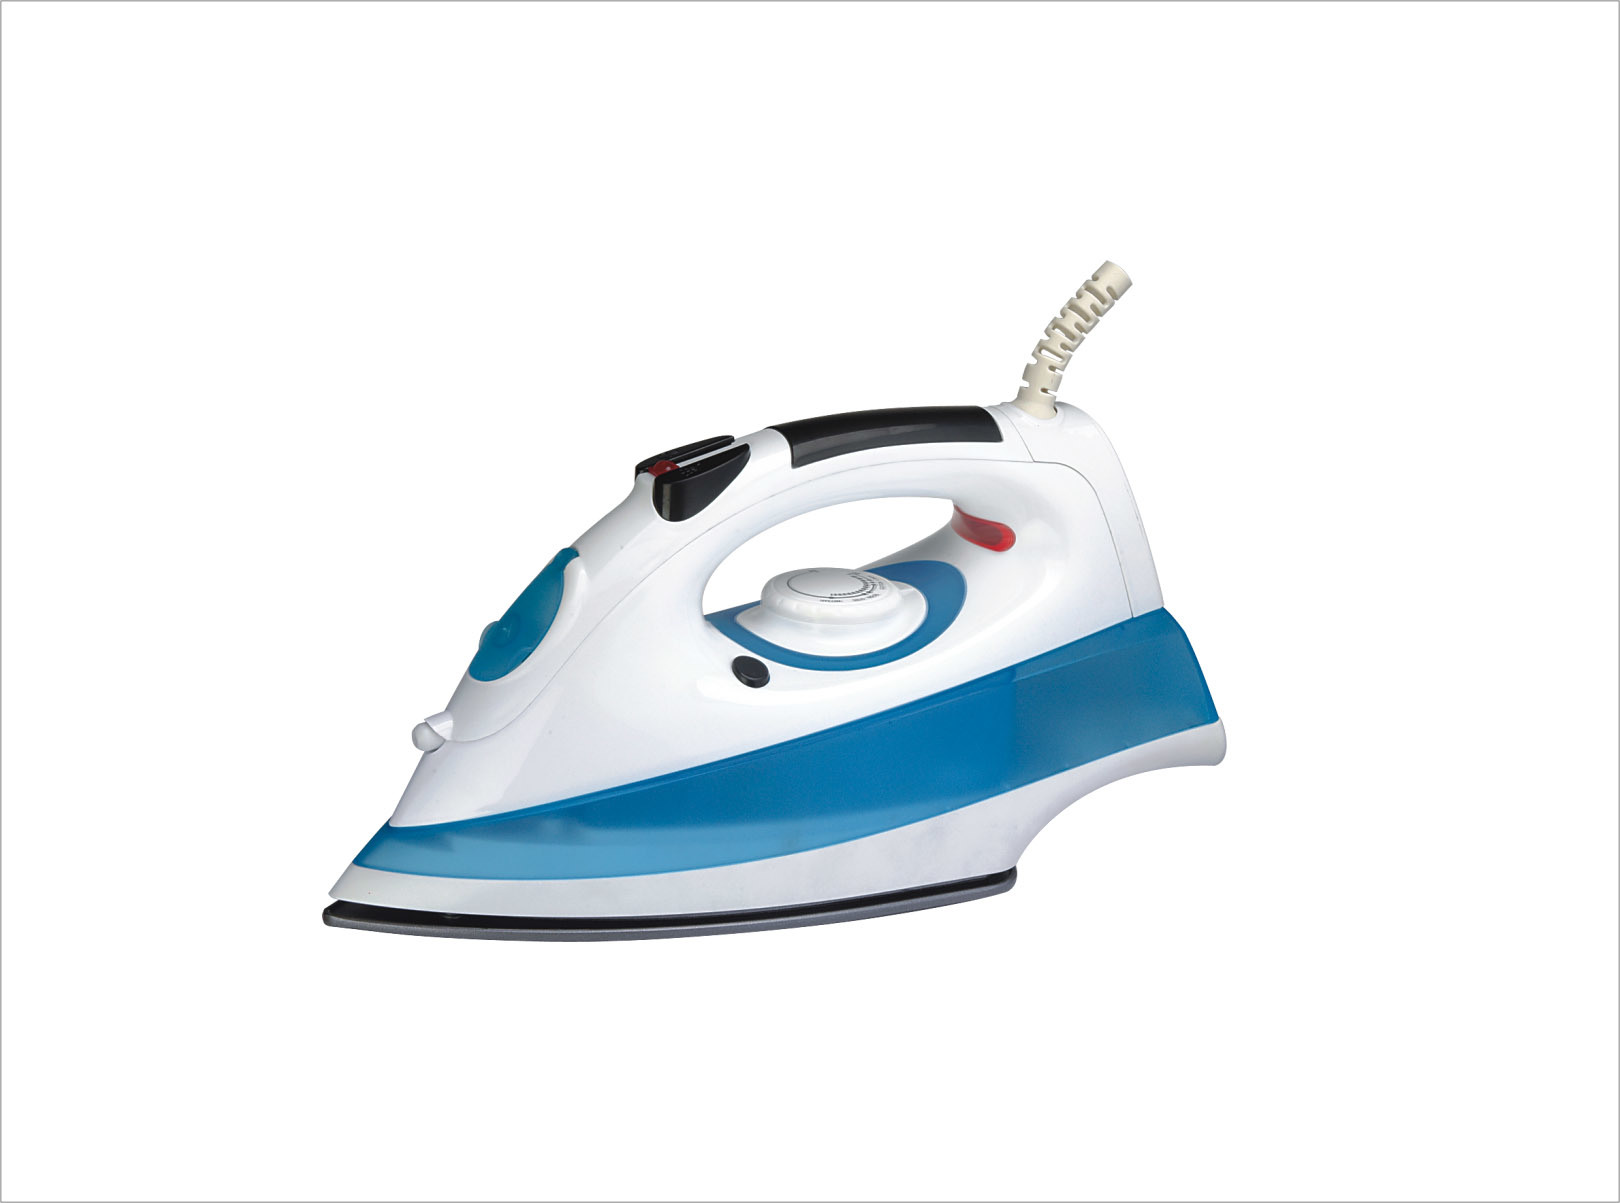 Professional Steam Iron Made In Usa ~ Professional steam iron st